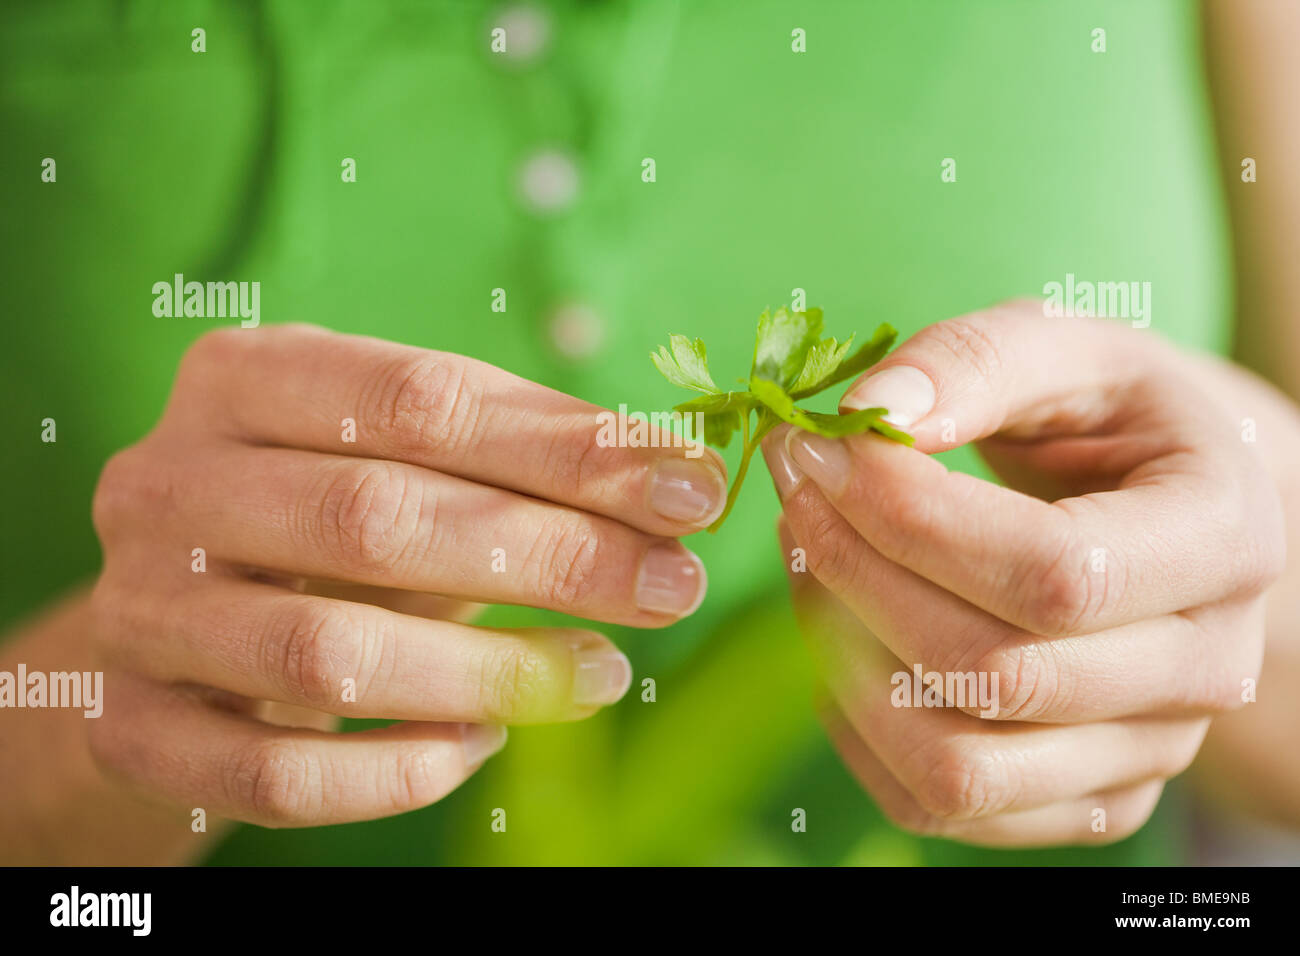 Woman with parsley, Sweden. - Stock Image